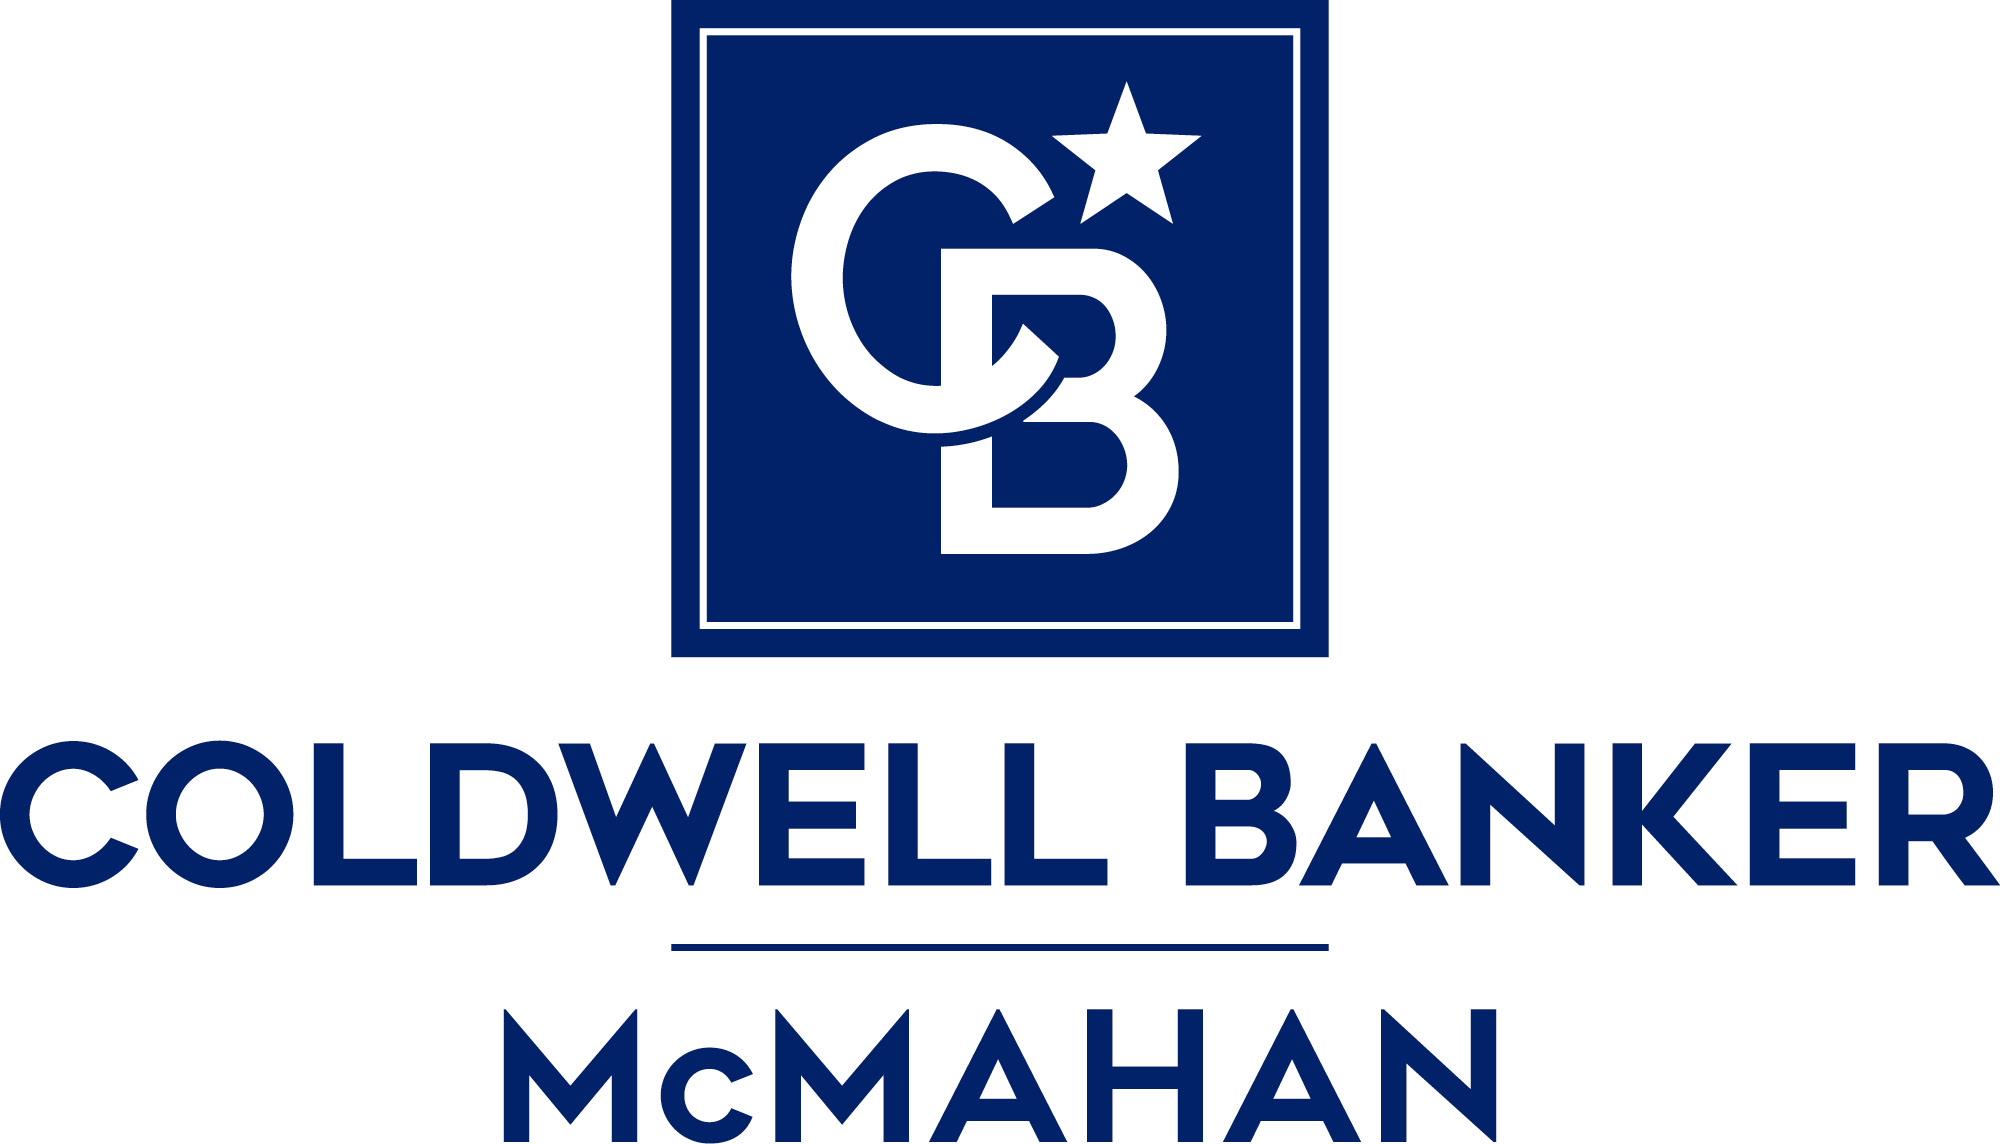 Angela LaPierre - Coldwell Banker McMahan Logo